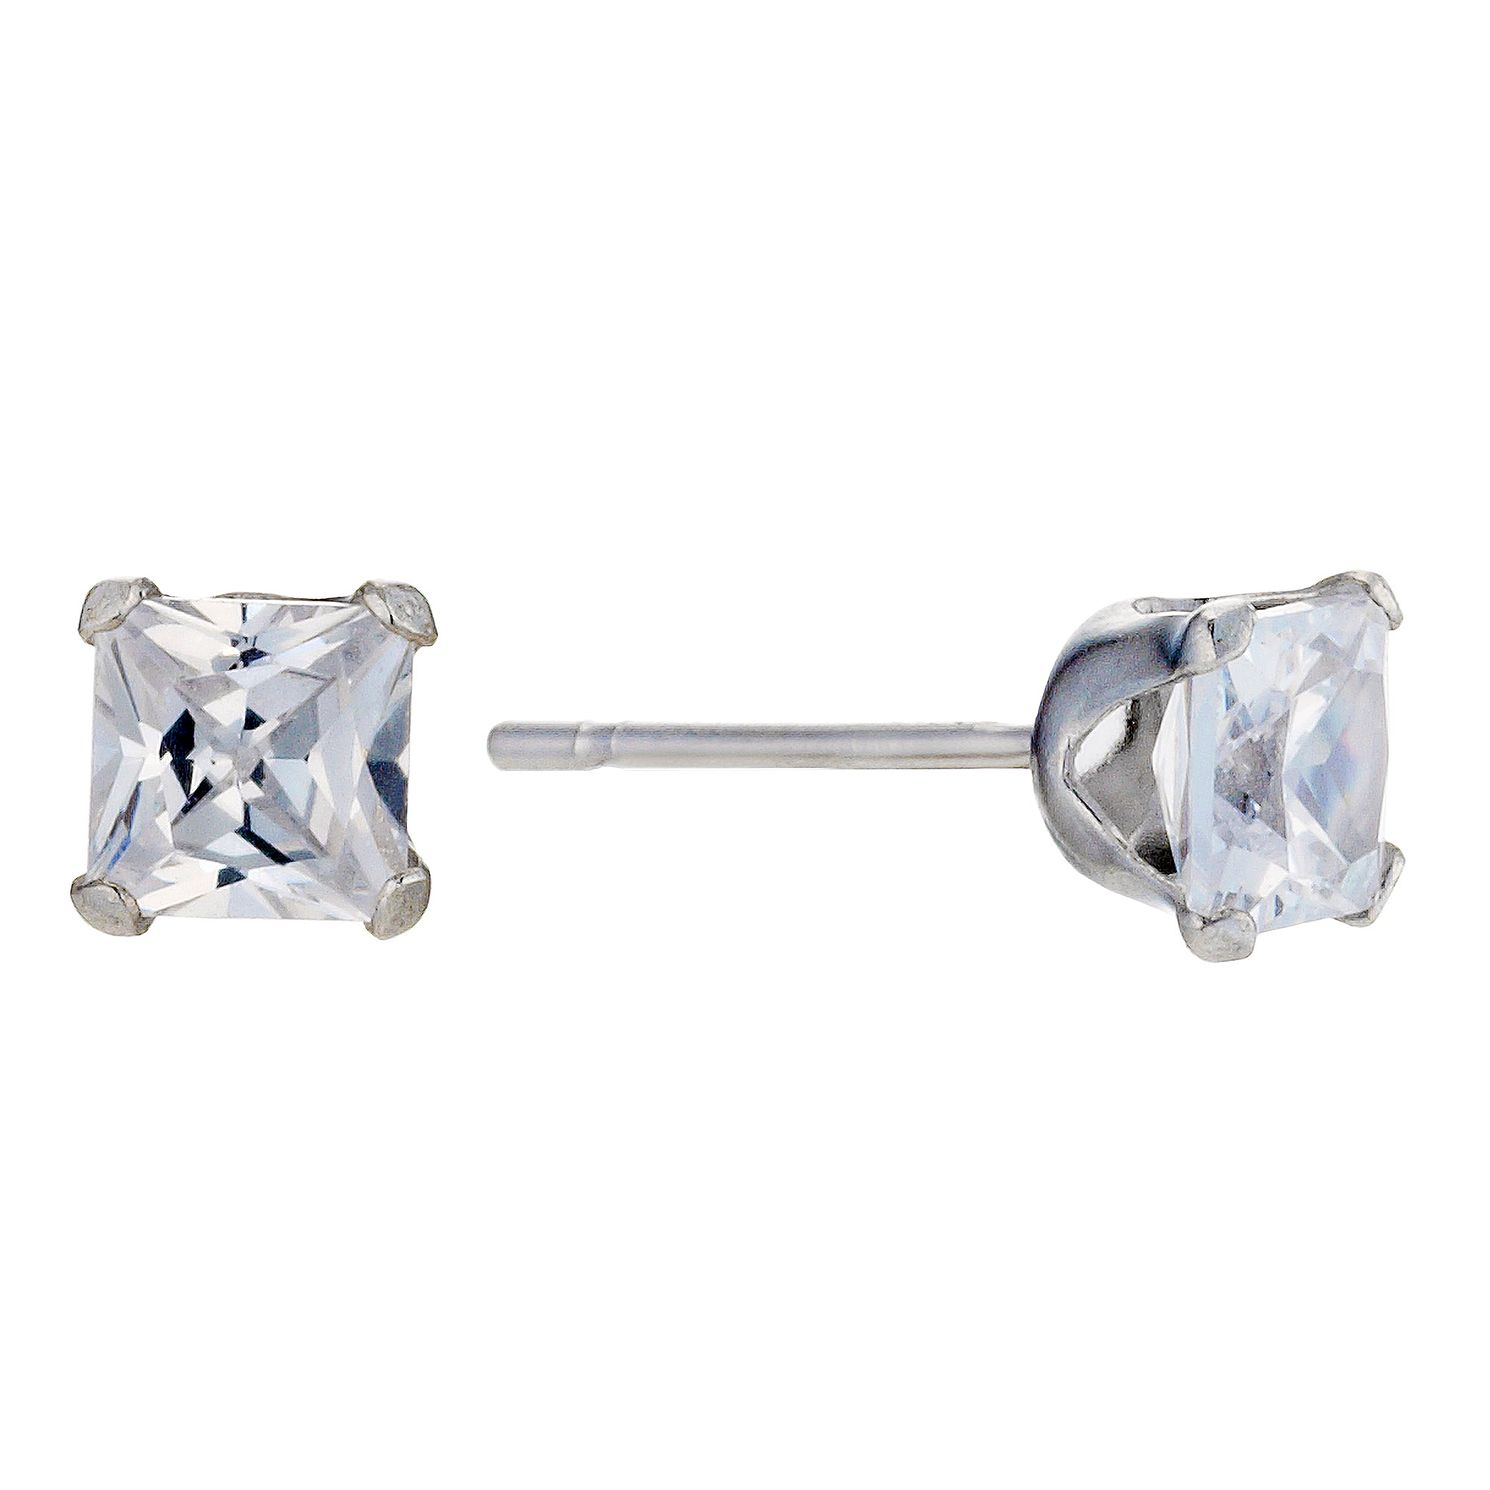 9ct White Gold Cubic Zirconia Square 4mm Stud Earrings - Product number 8988137